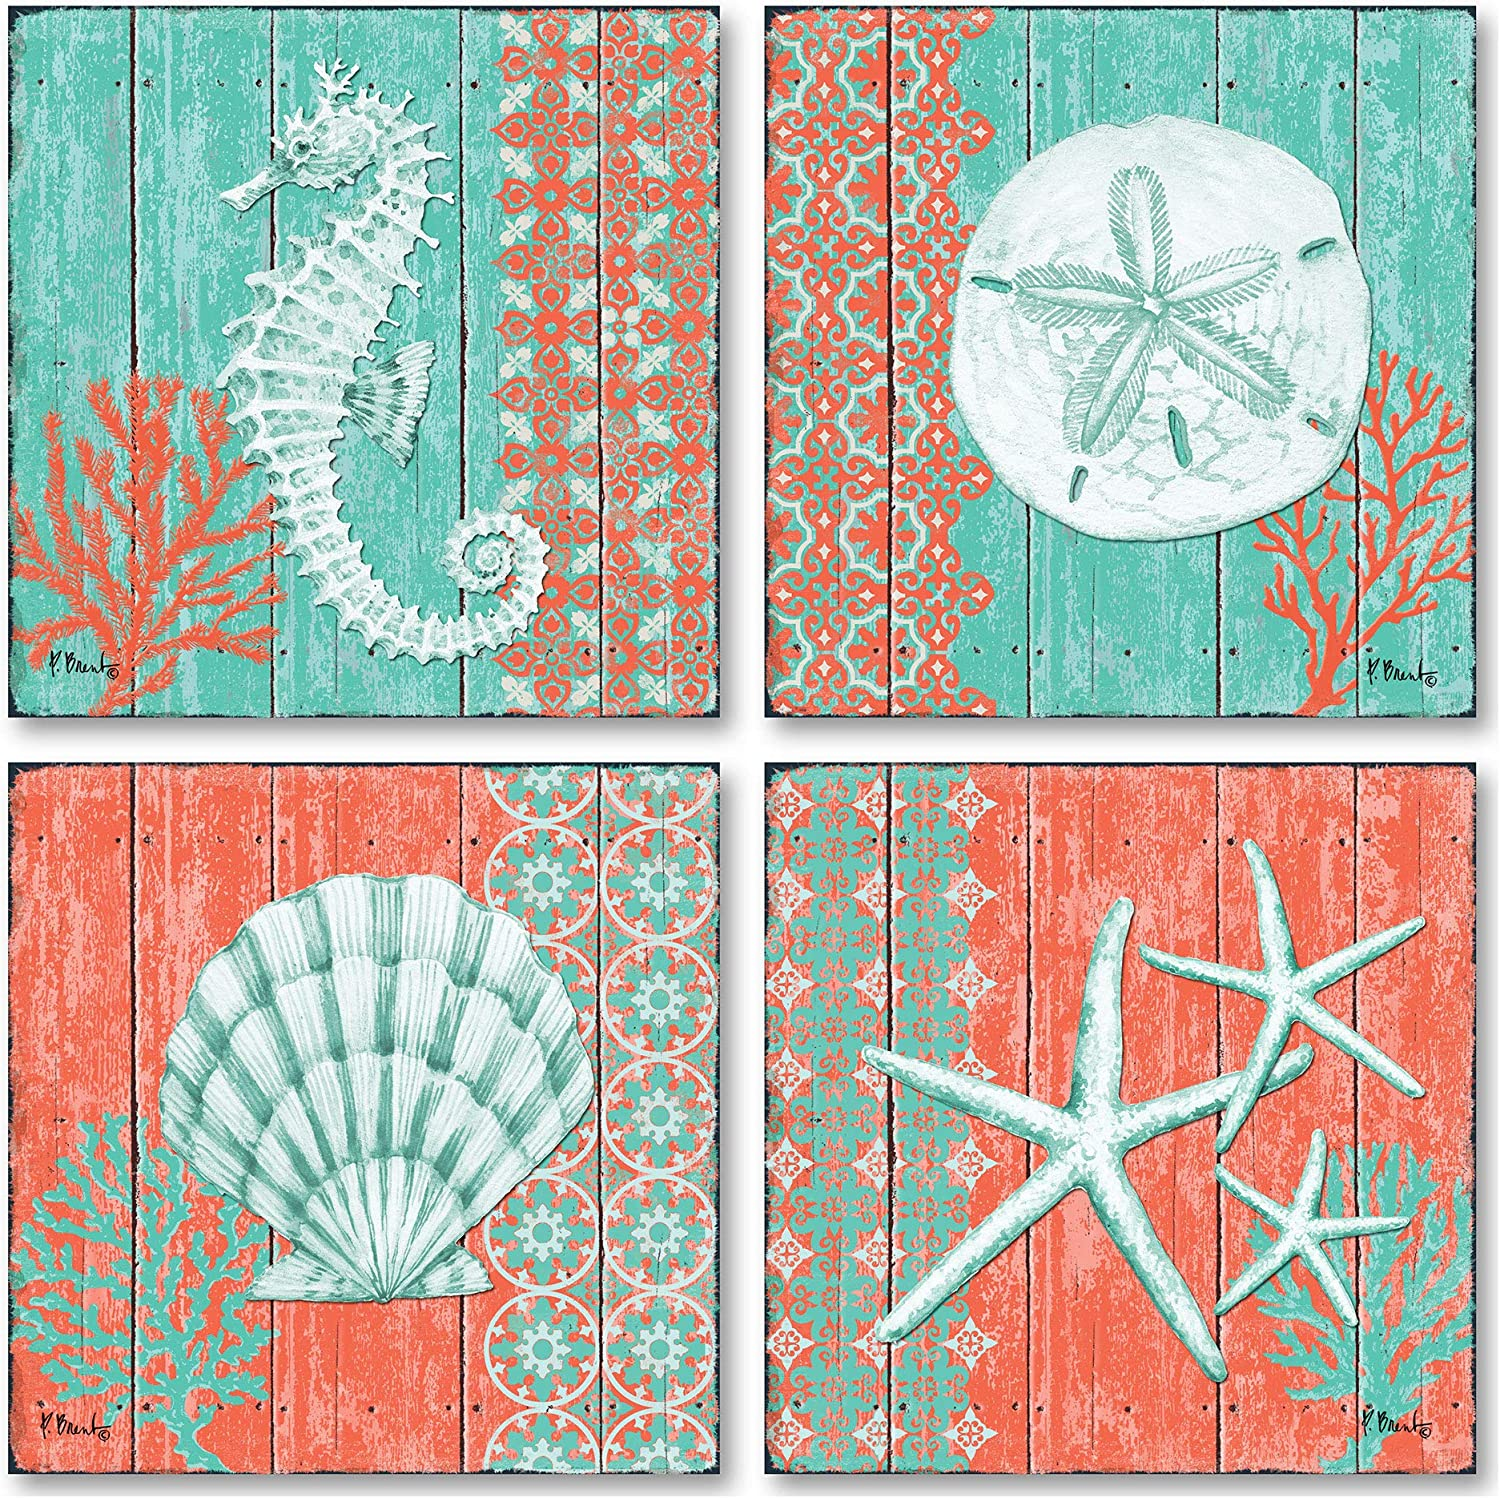 4 Lovely Teal and Coral Ocean Seashell Sand Dollar Seahorse Star Fish Collage Poster Prints; Nautical Decor; Four 12x12in Poster Prints